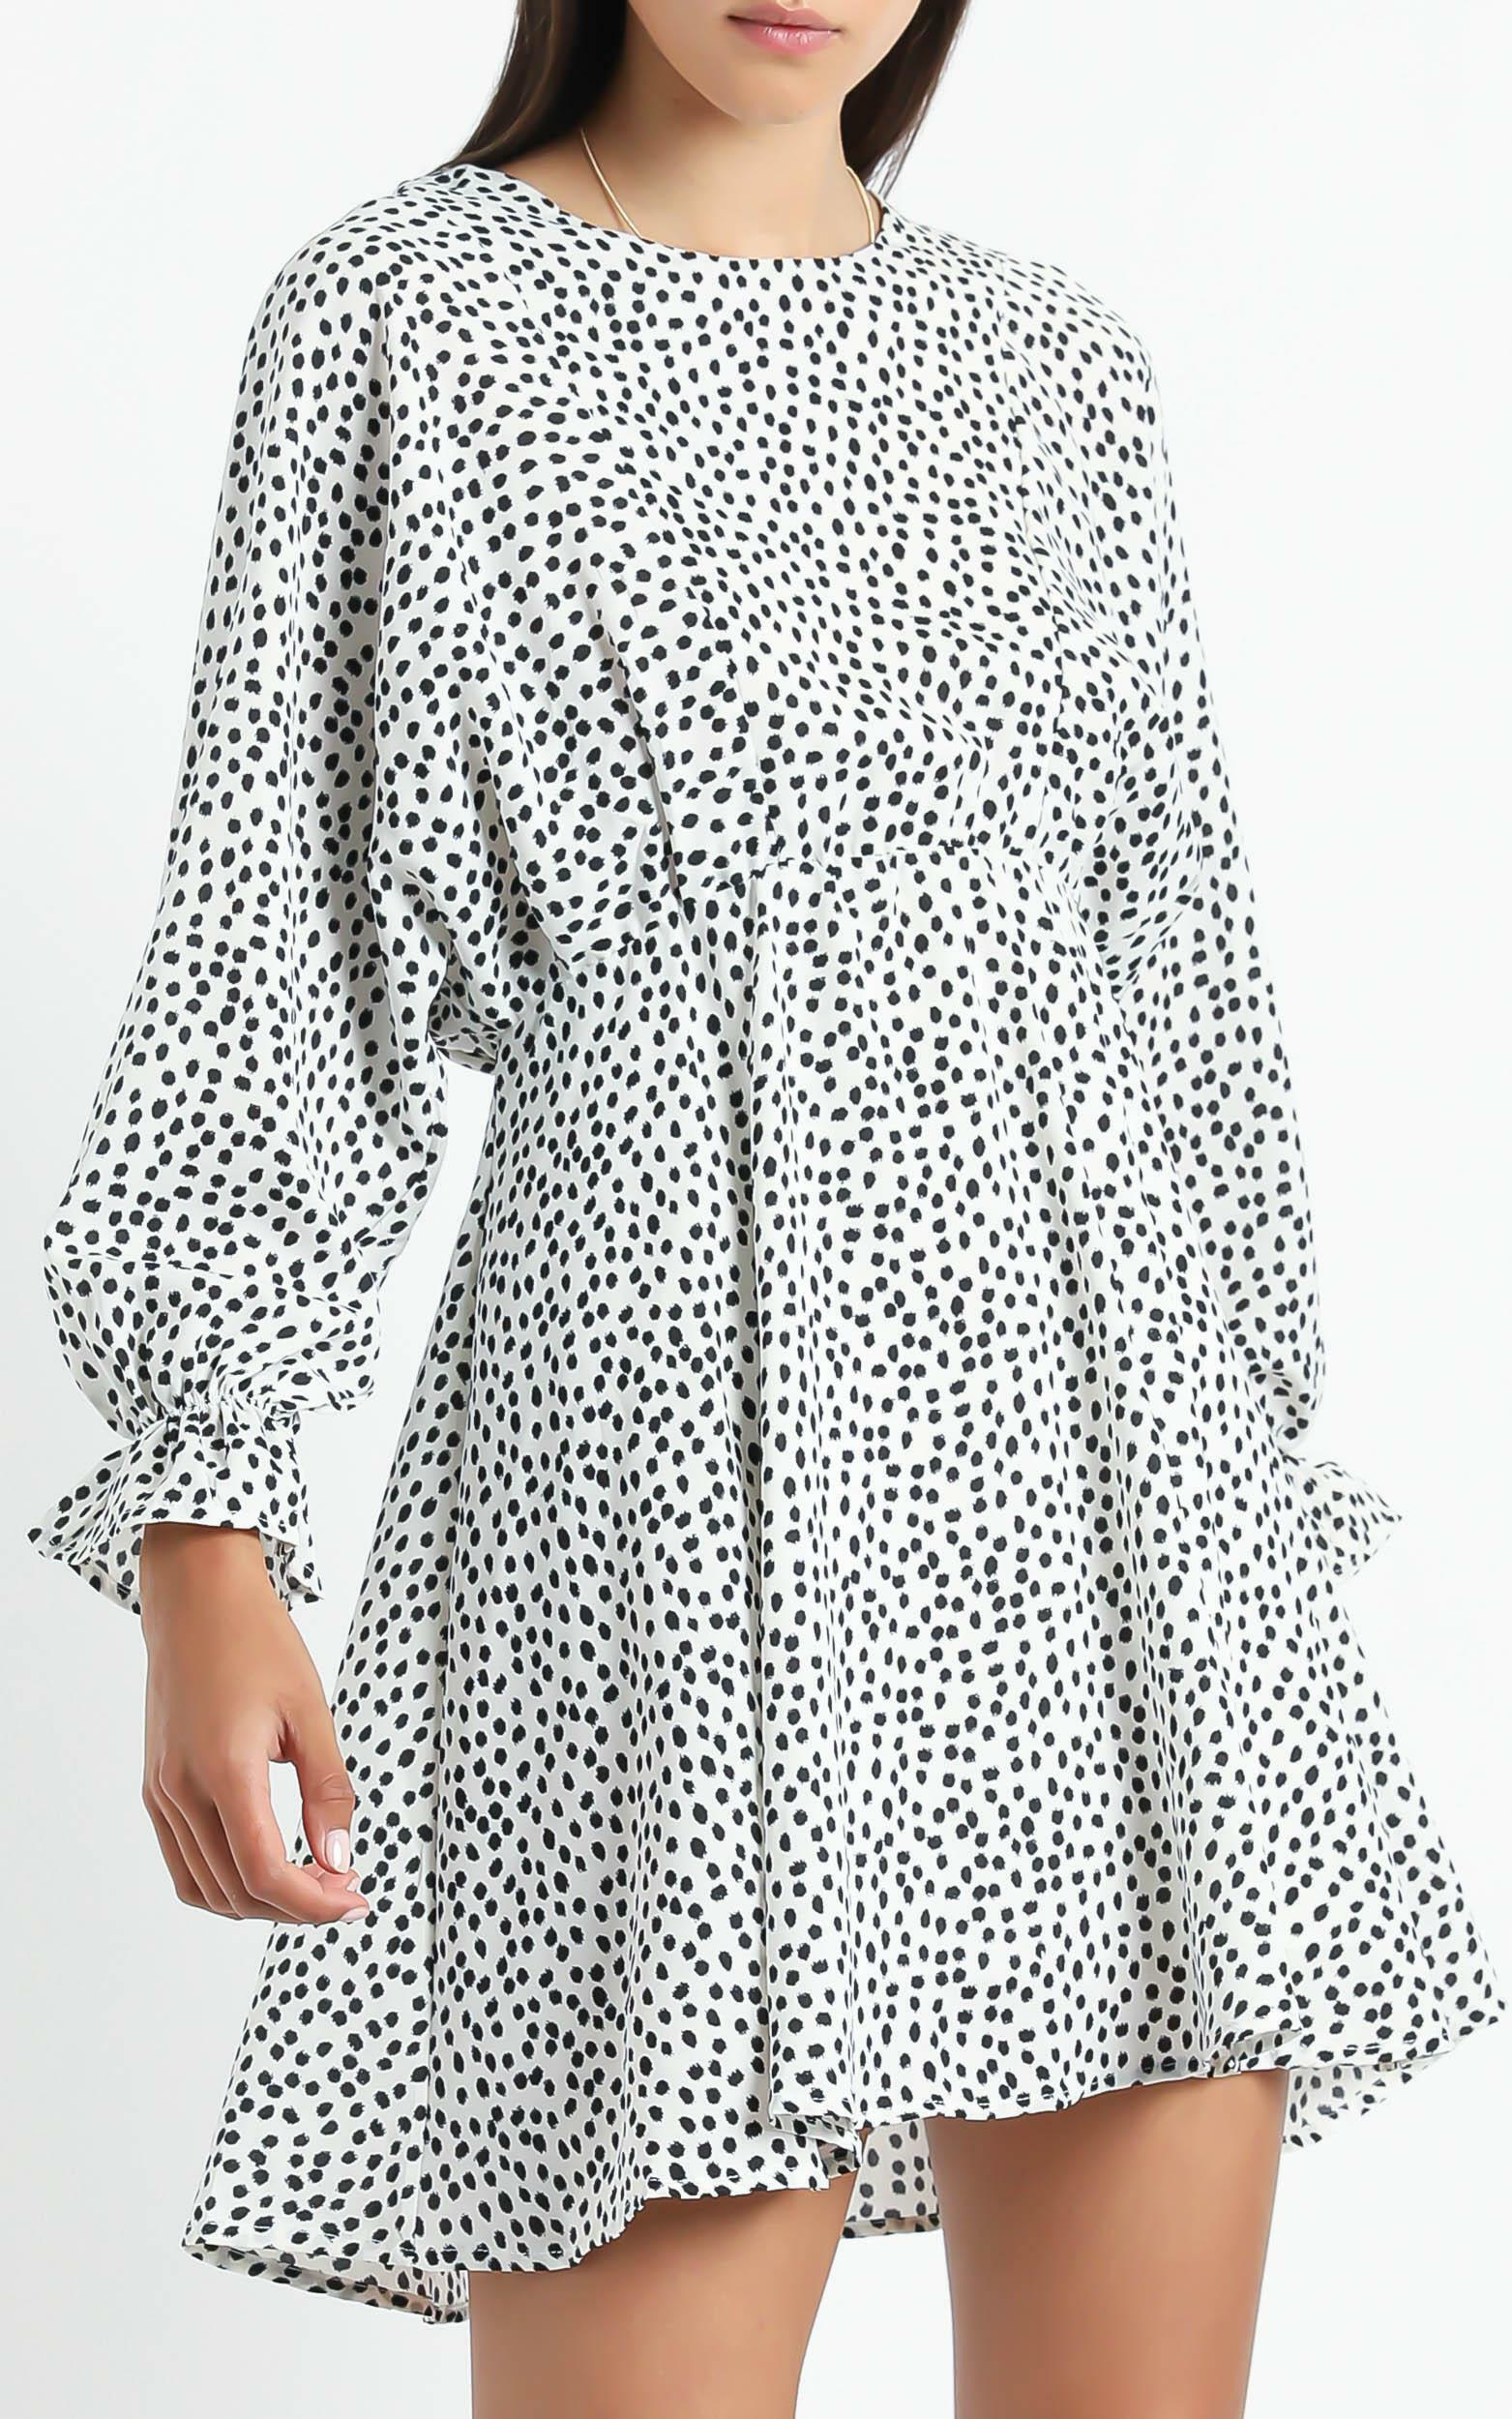 Clementina Dress in Black Spot - 6 (XS), White, hi-res image number null